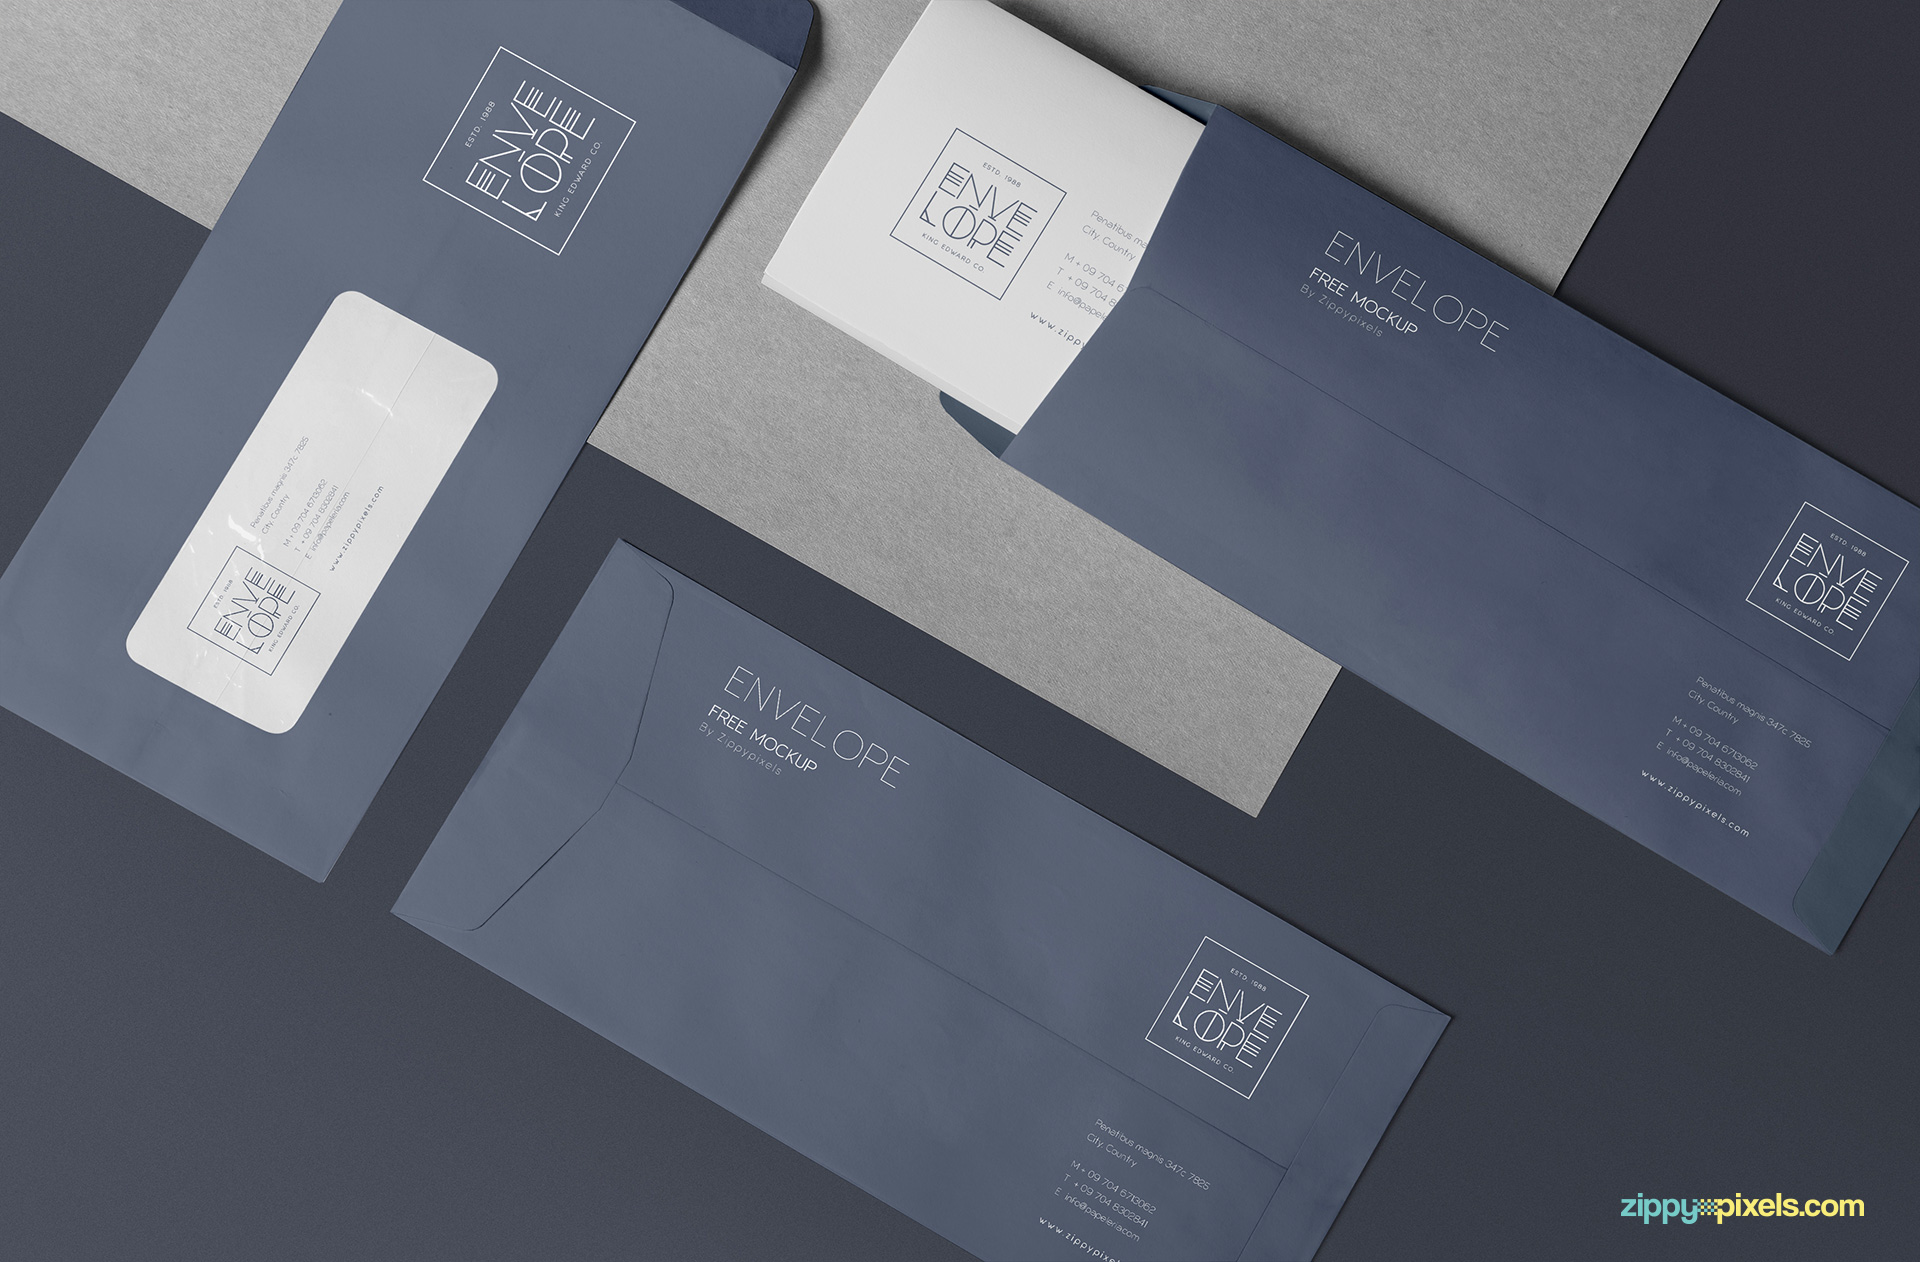 Brilliant envelope mockup PSD free.